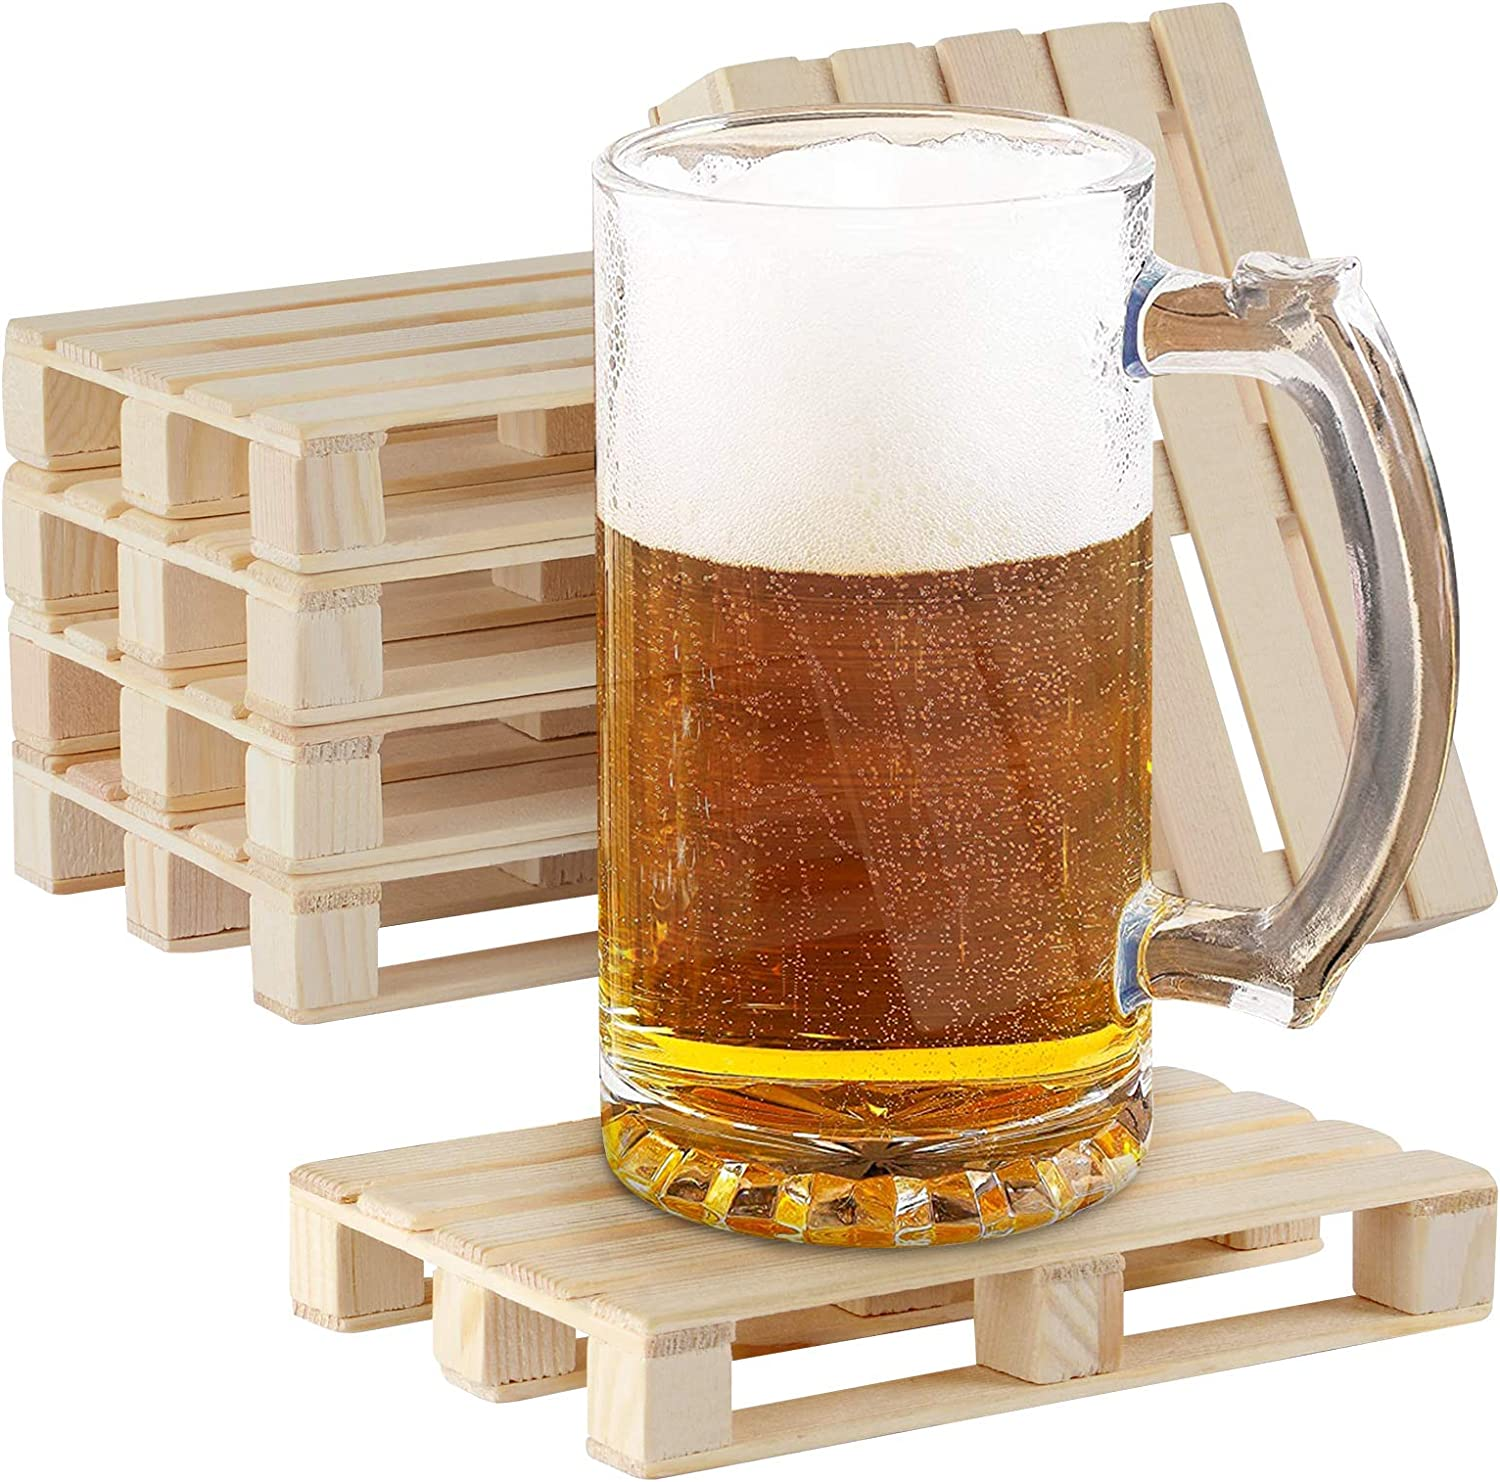 Linkidea 6 Packs Mini Wooden Pallet Beverage Square Coasters, for Hot and Cold, Beer Drinks Bars Restaurants Living Rooms (Native Wood)